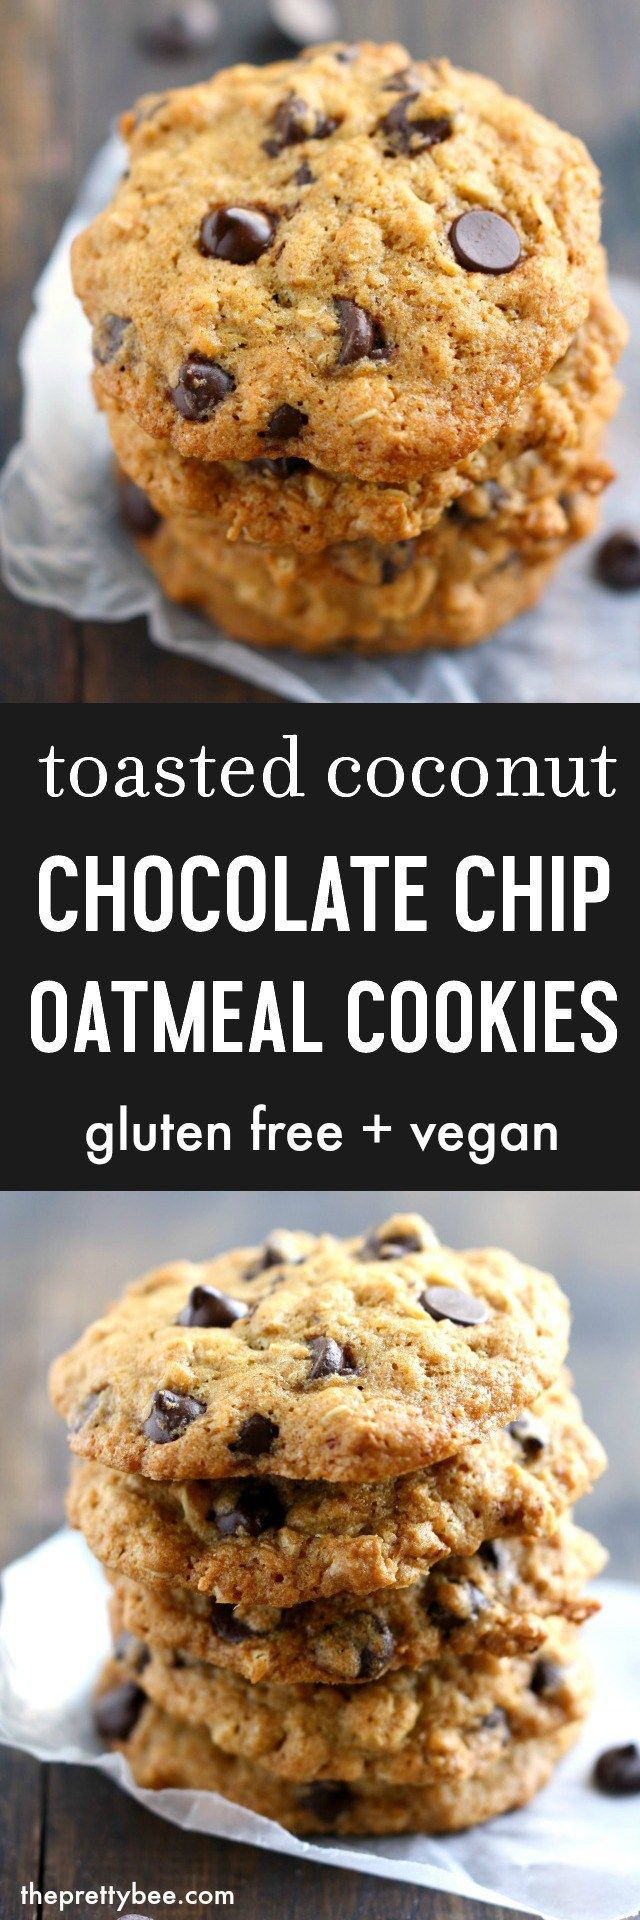 Toasted coconut chocolate chip oatmeal cookies are chewy and delicious. This easy cookie recipe is vegan and gluten free.